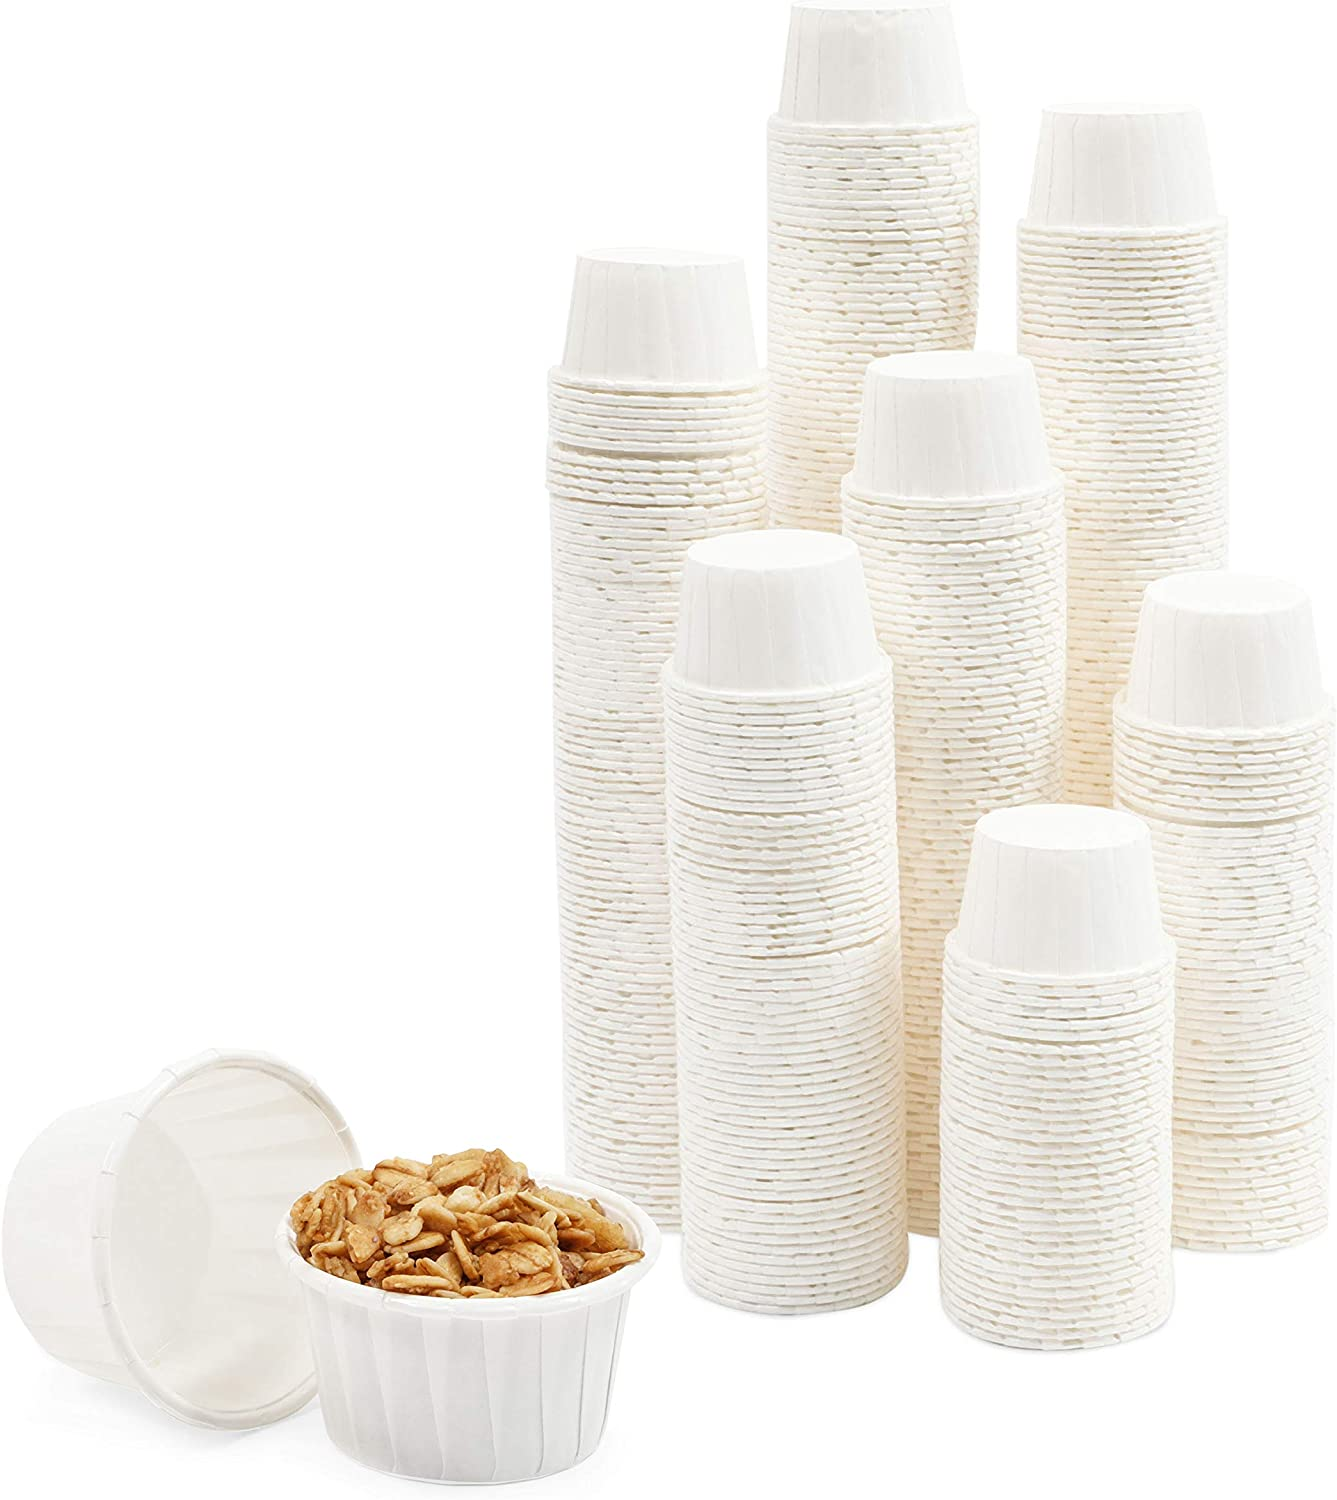 White Paper Souffle Cups, 2 oz Portions for Condiments, Samples (500 Pack)